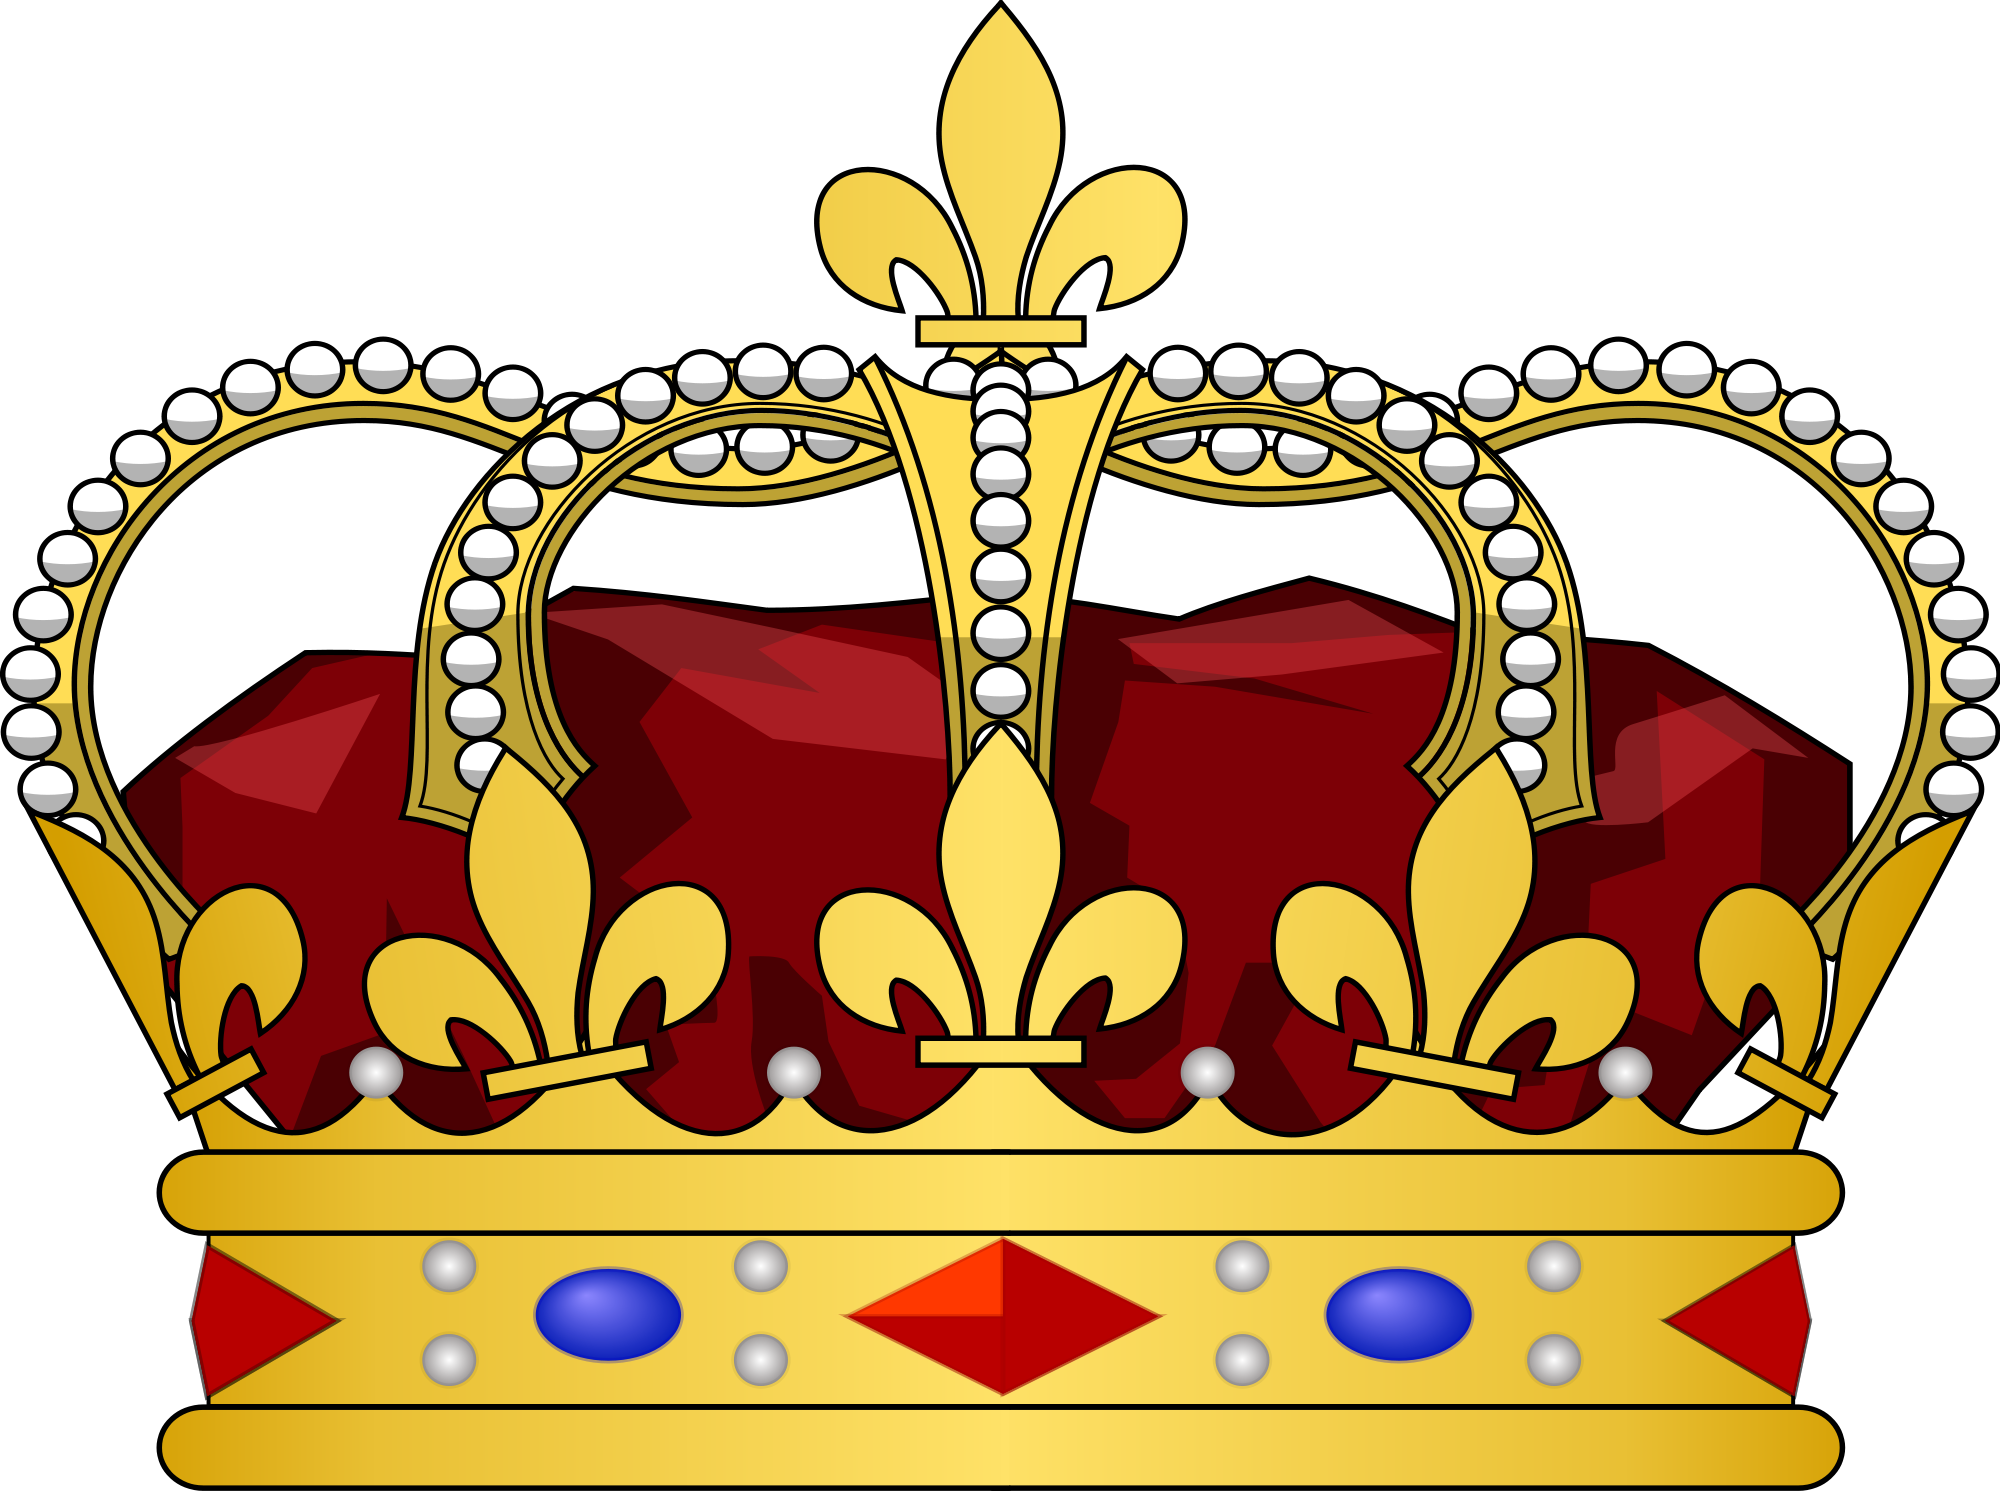 King crown types clipart banner freeuse stock Tilted king crown clip art - crazywidow.info banner freeuse stock